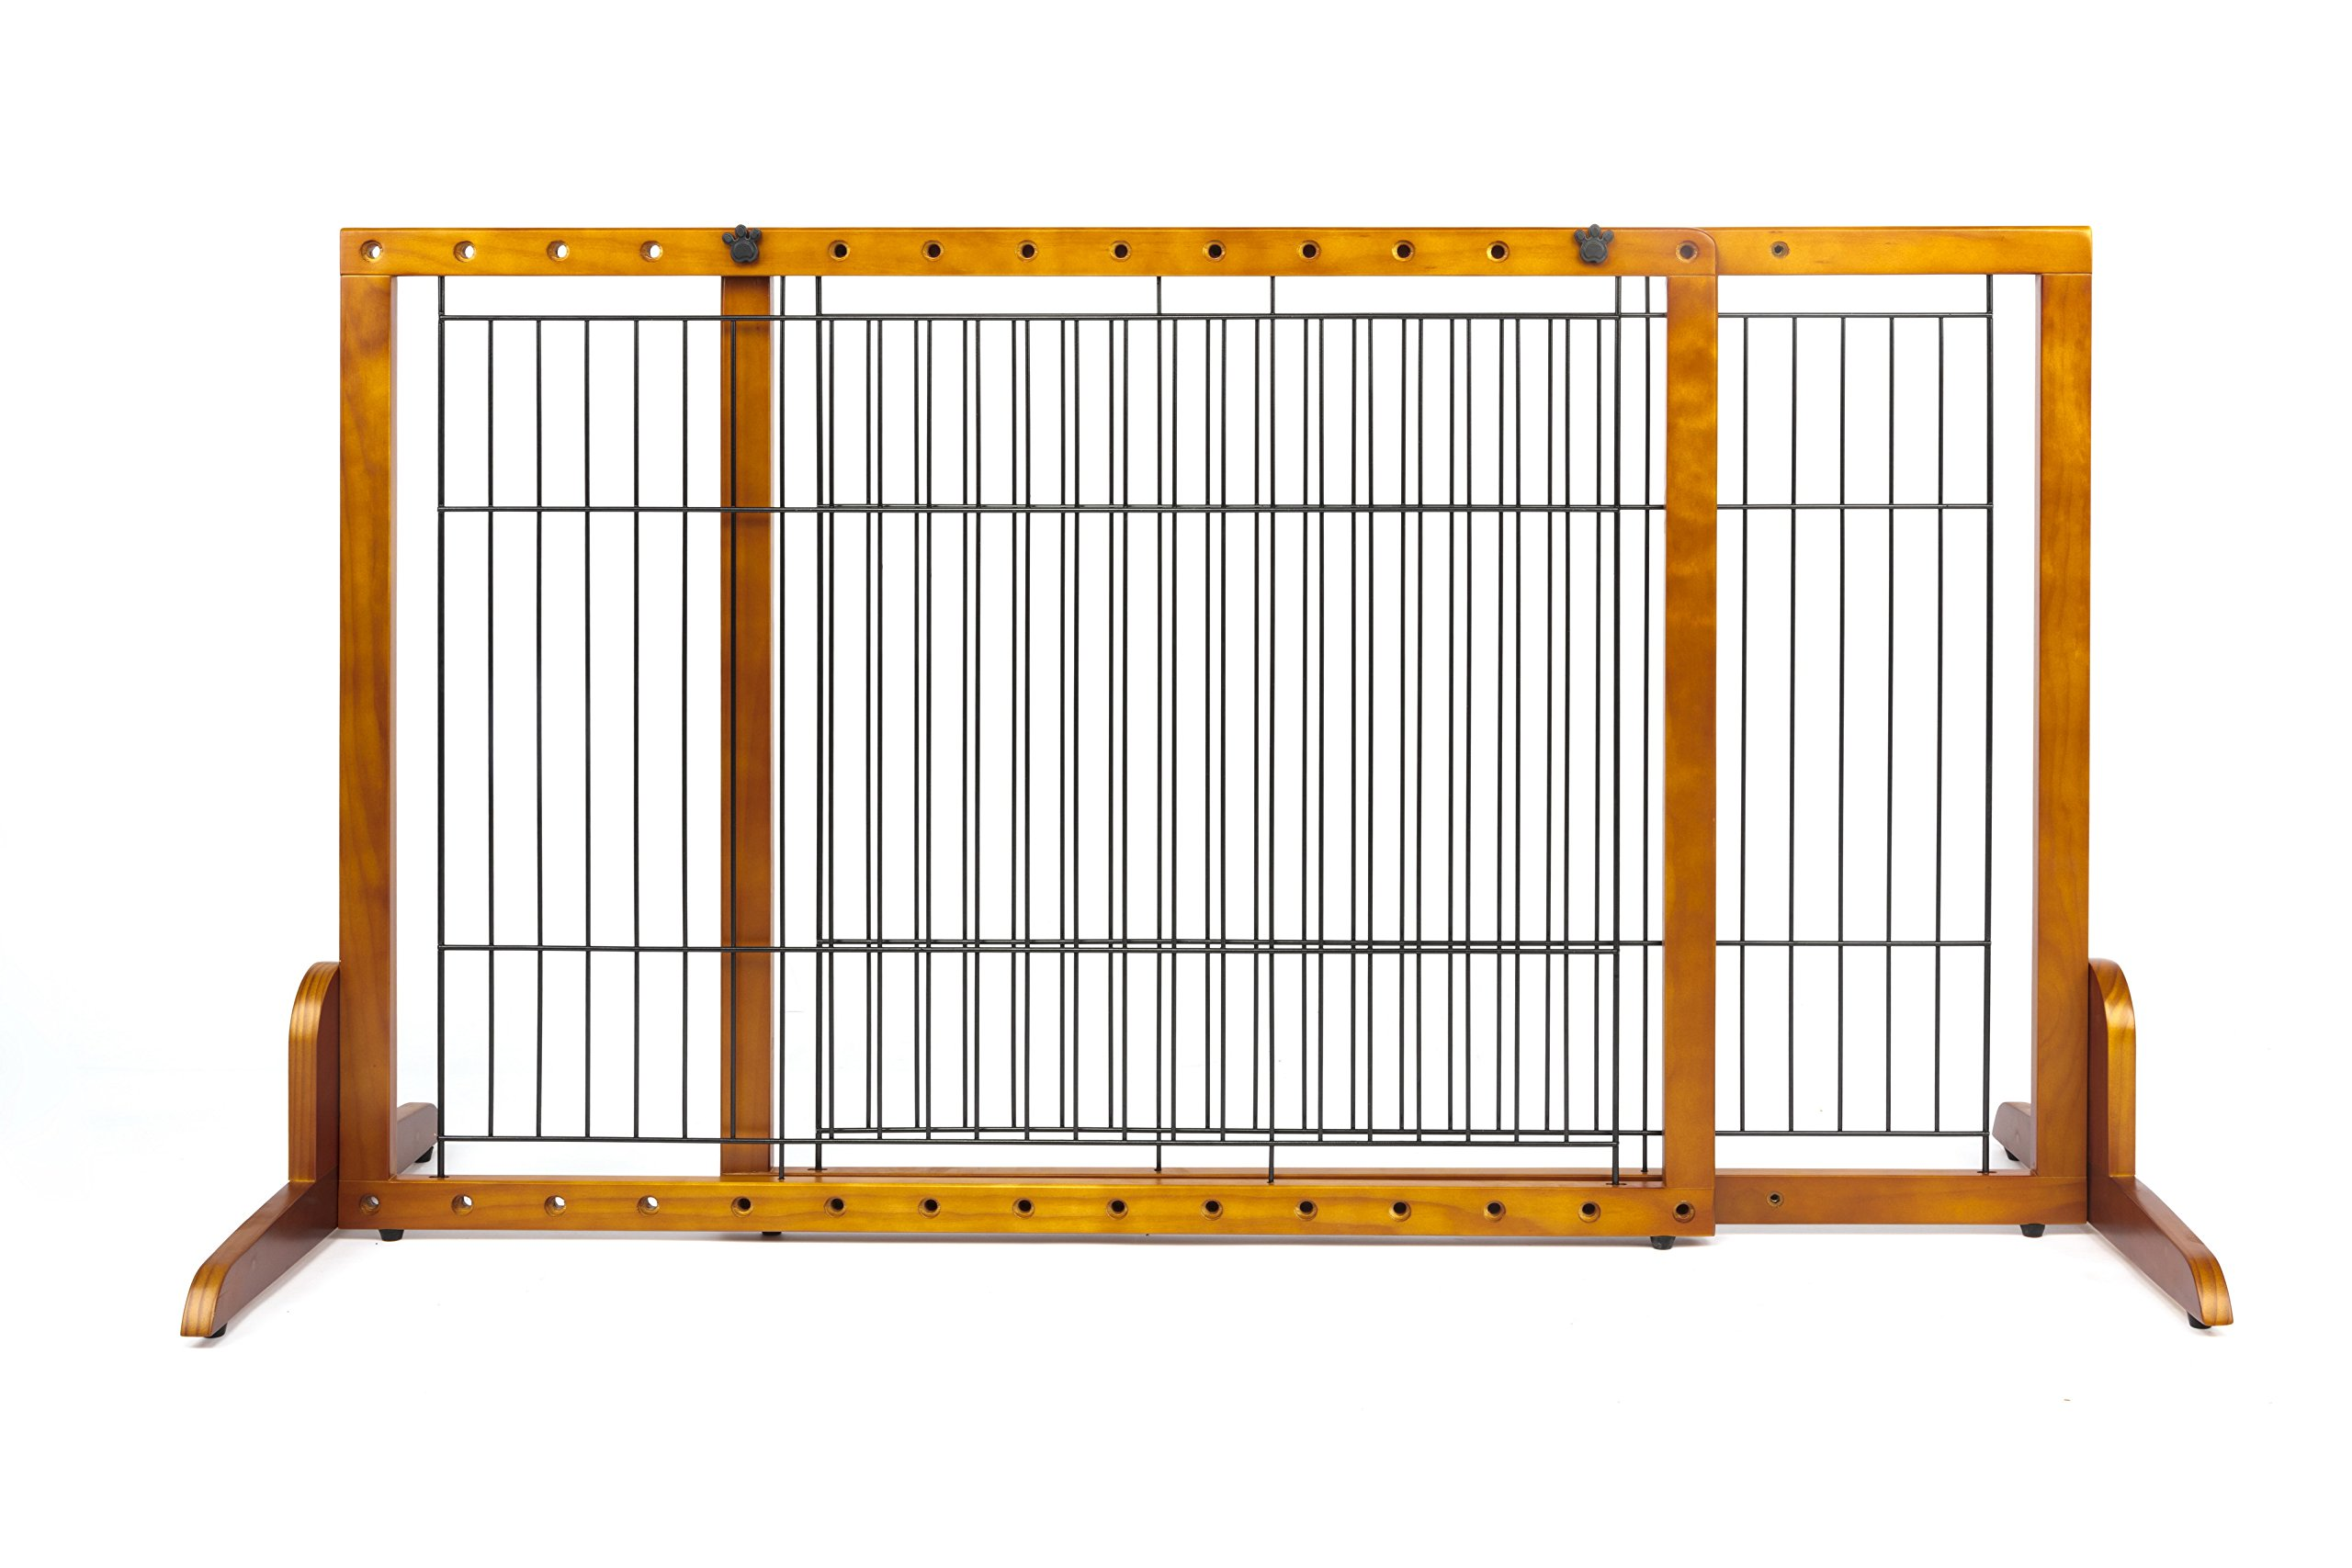 Simply Plus Wooden Pet Gate No Door, Freestanding Pet Dog Gate, For Indoor Home & Office Use. Keeps Pets Safe . Easy Set Up, No Tools Required